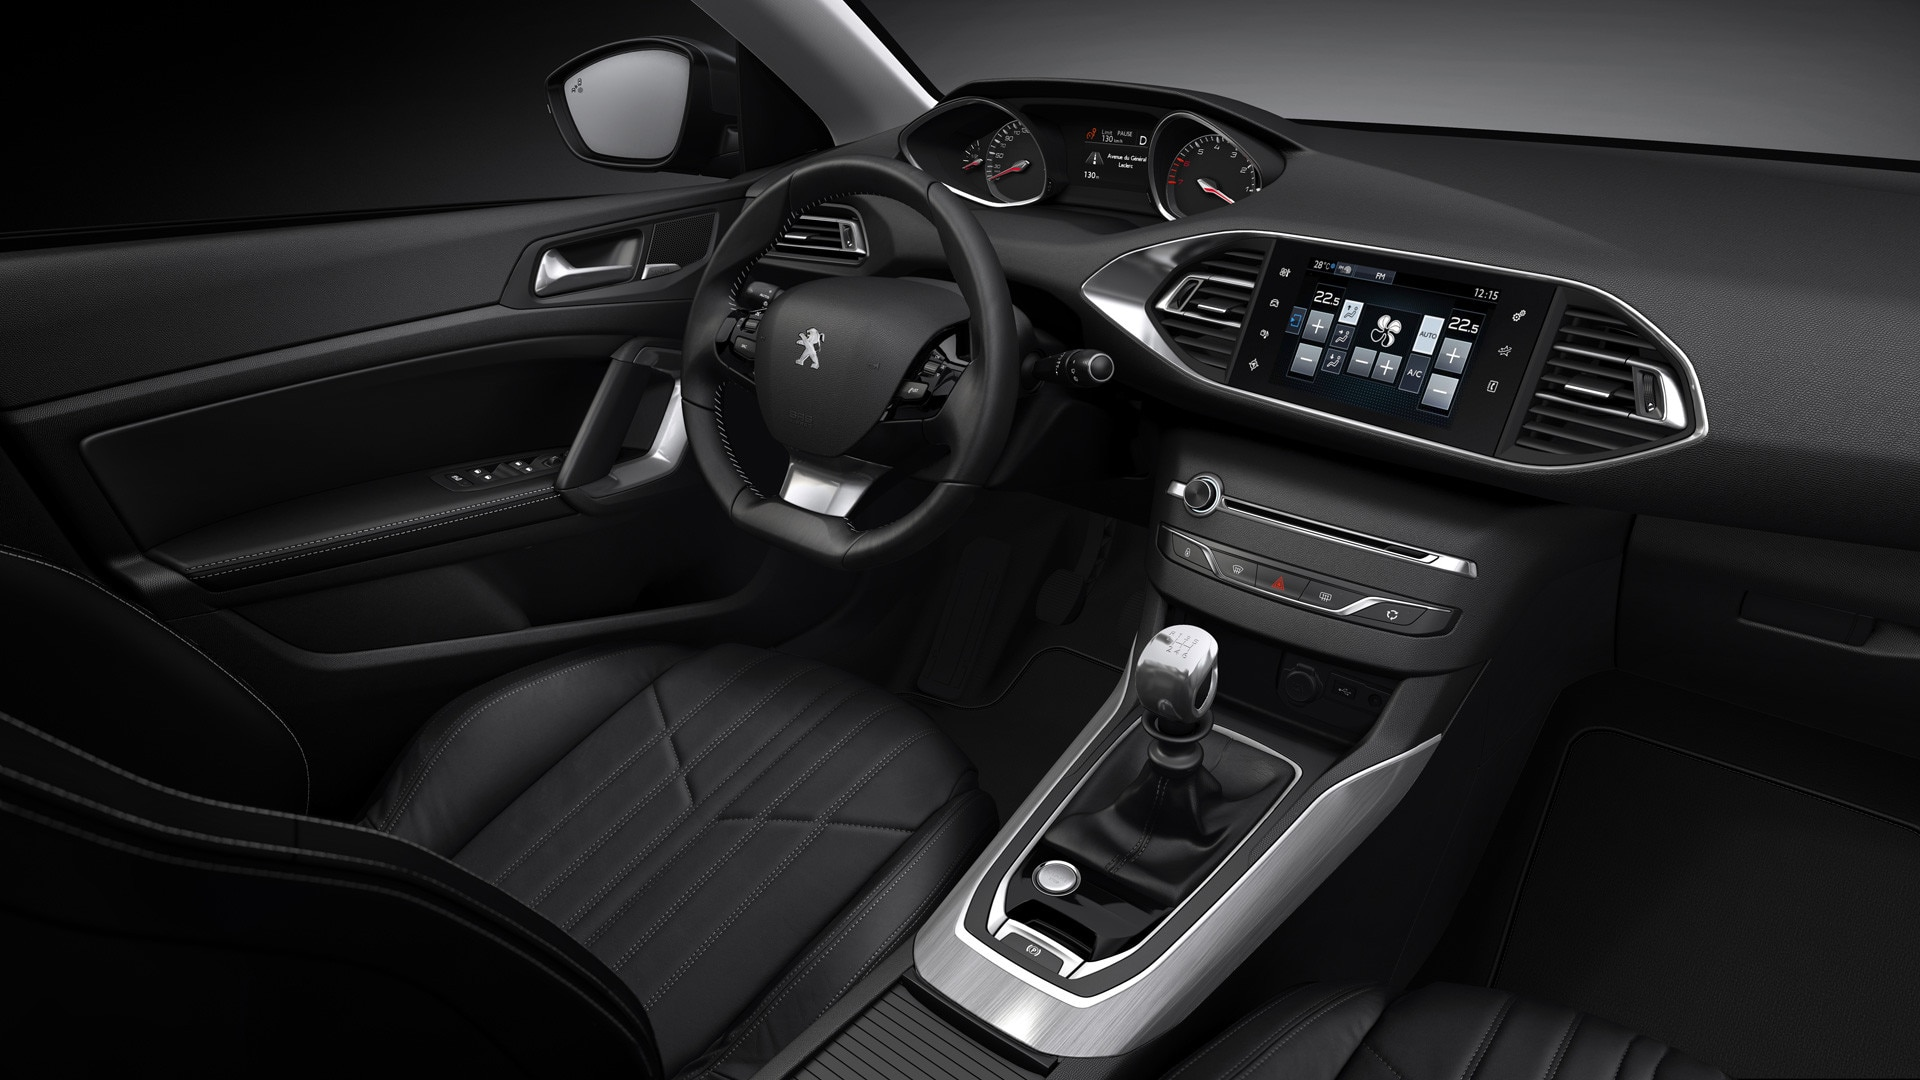 Photos & Videos | Peugeot 308 SW from Peugeot Singapore